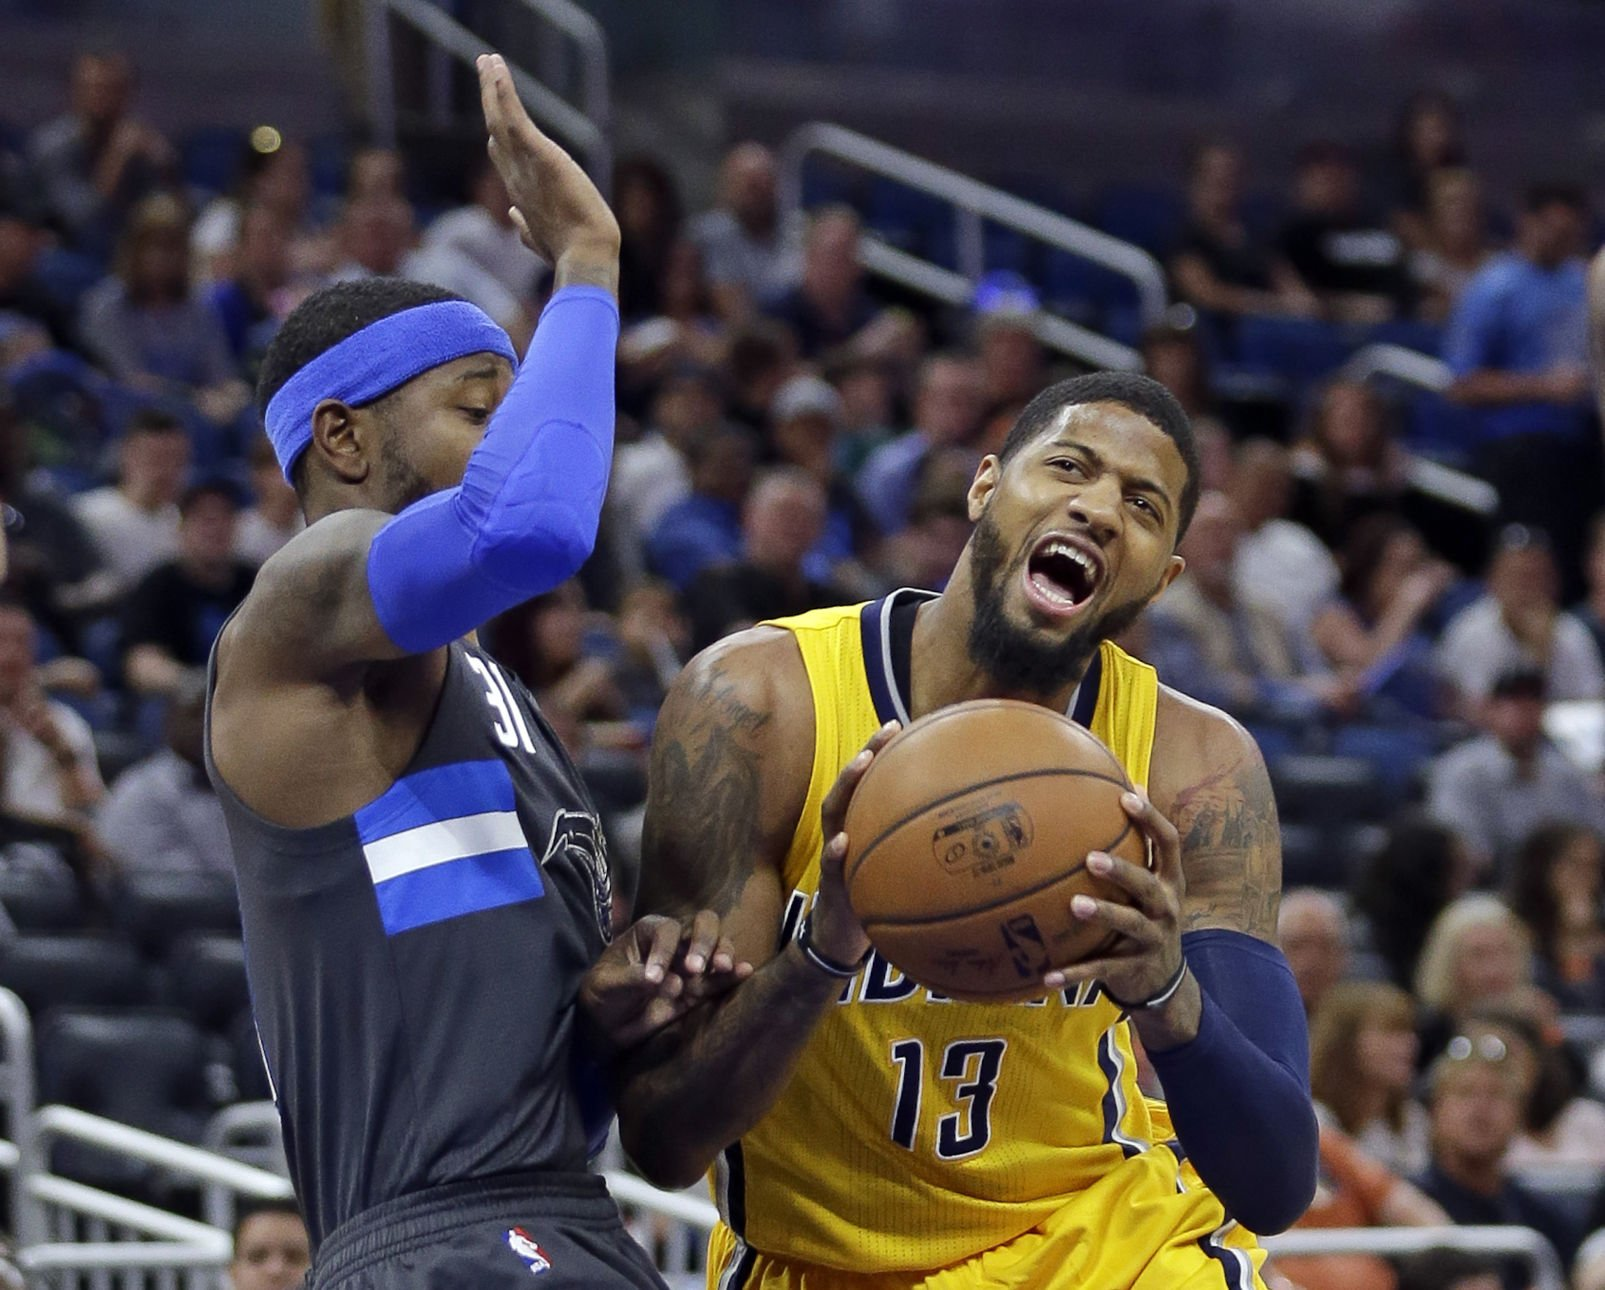 Pacers filed tampering charges against Lakers over pursuit of Paul George